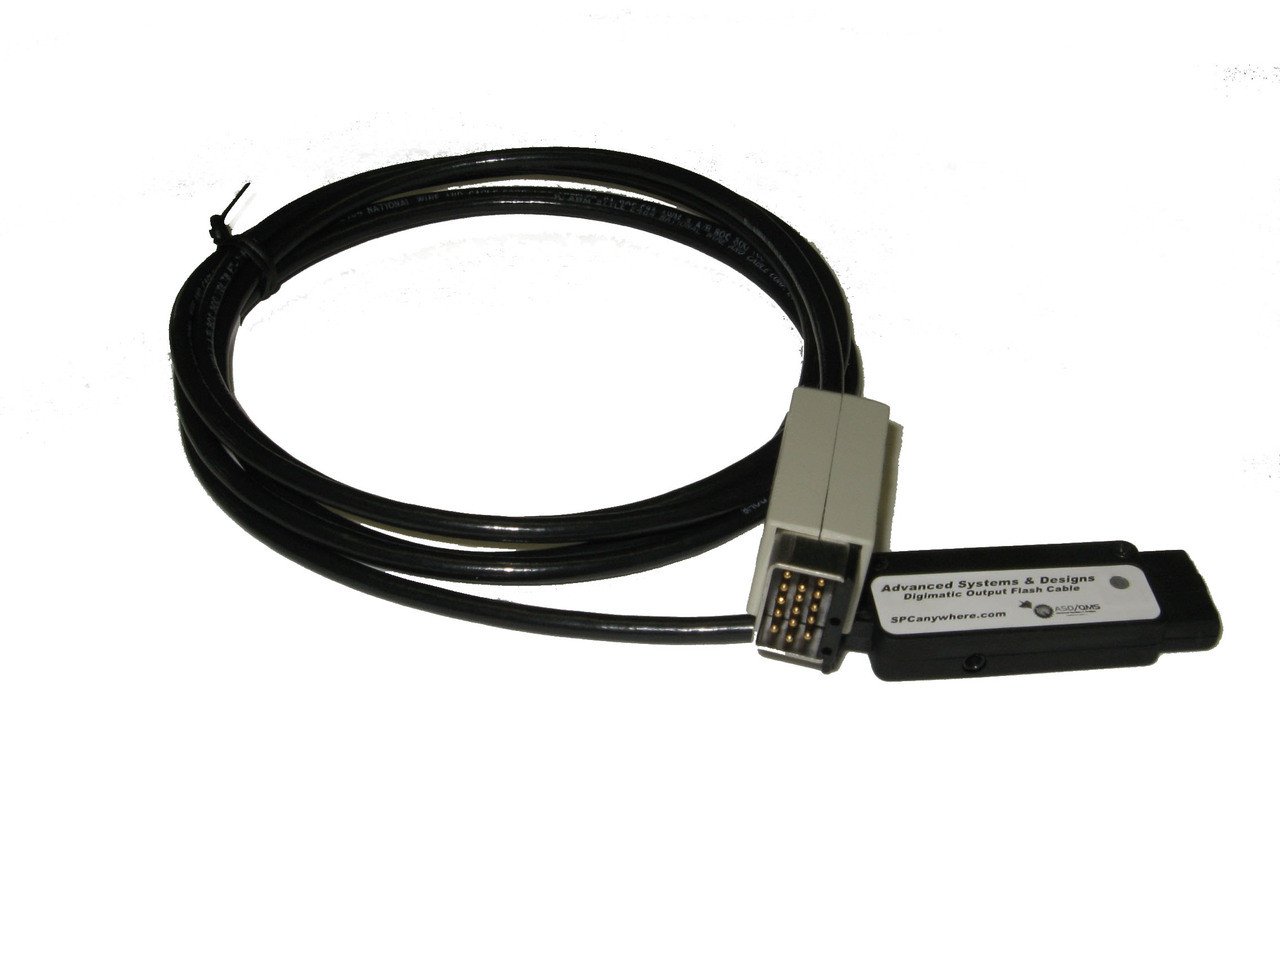 Mettler am pm balance digimatic flashcable gage interface cable - Uur pm balances ...